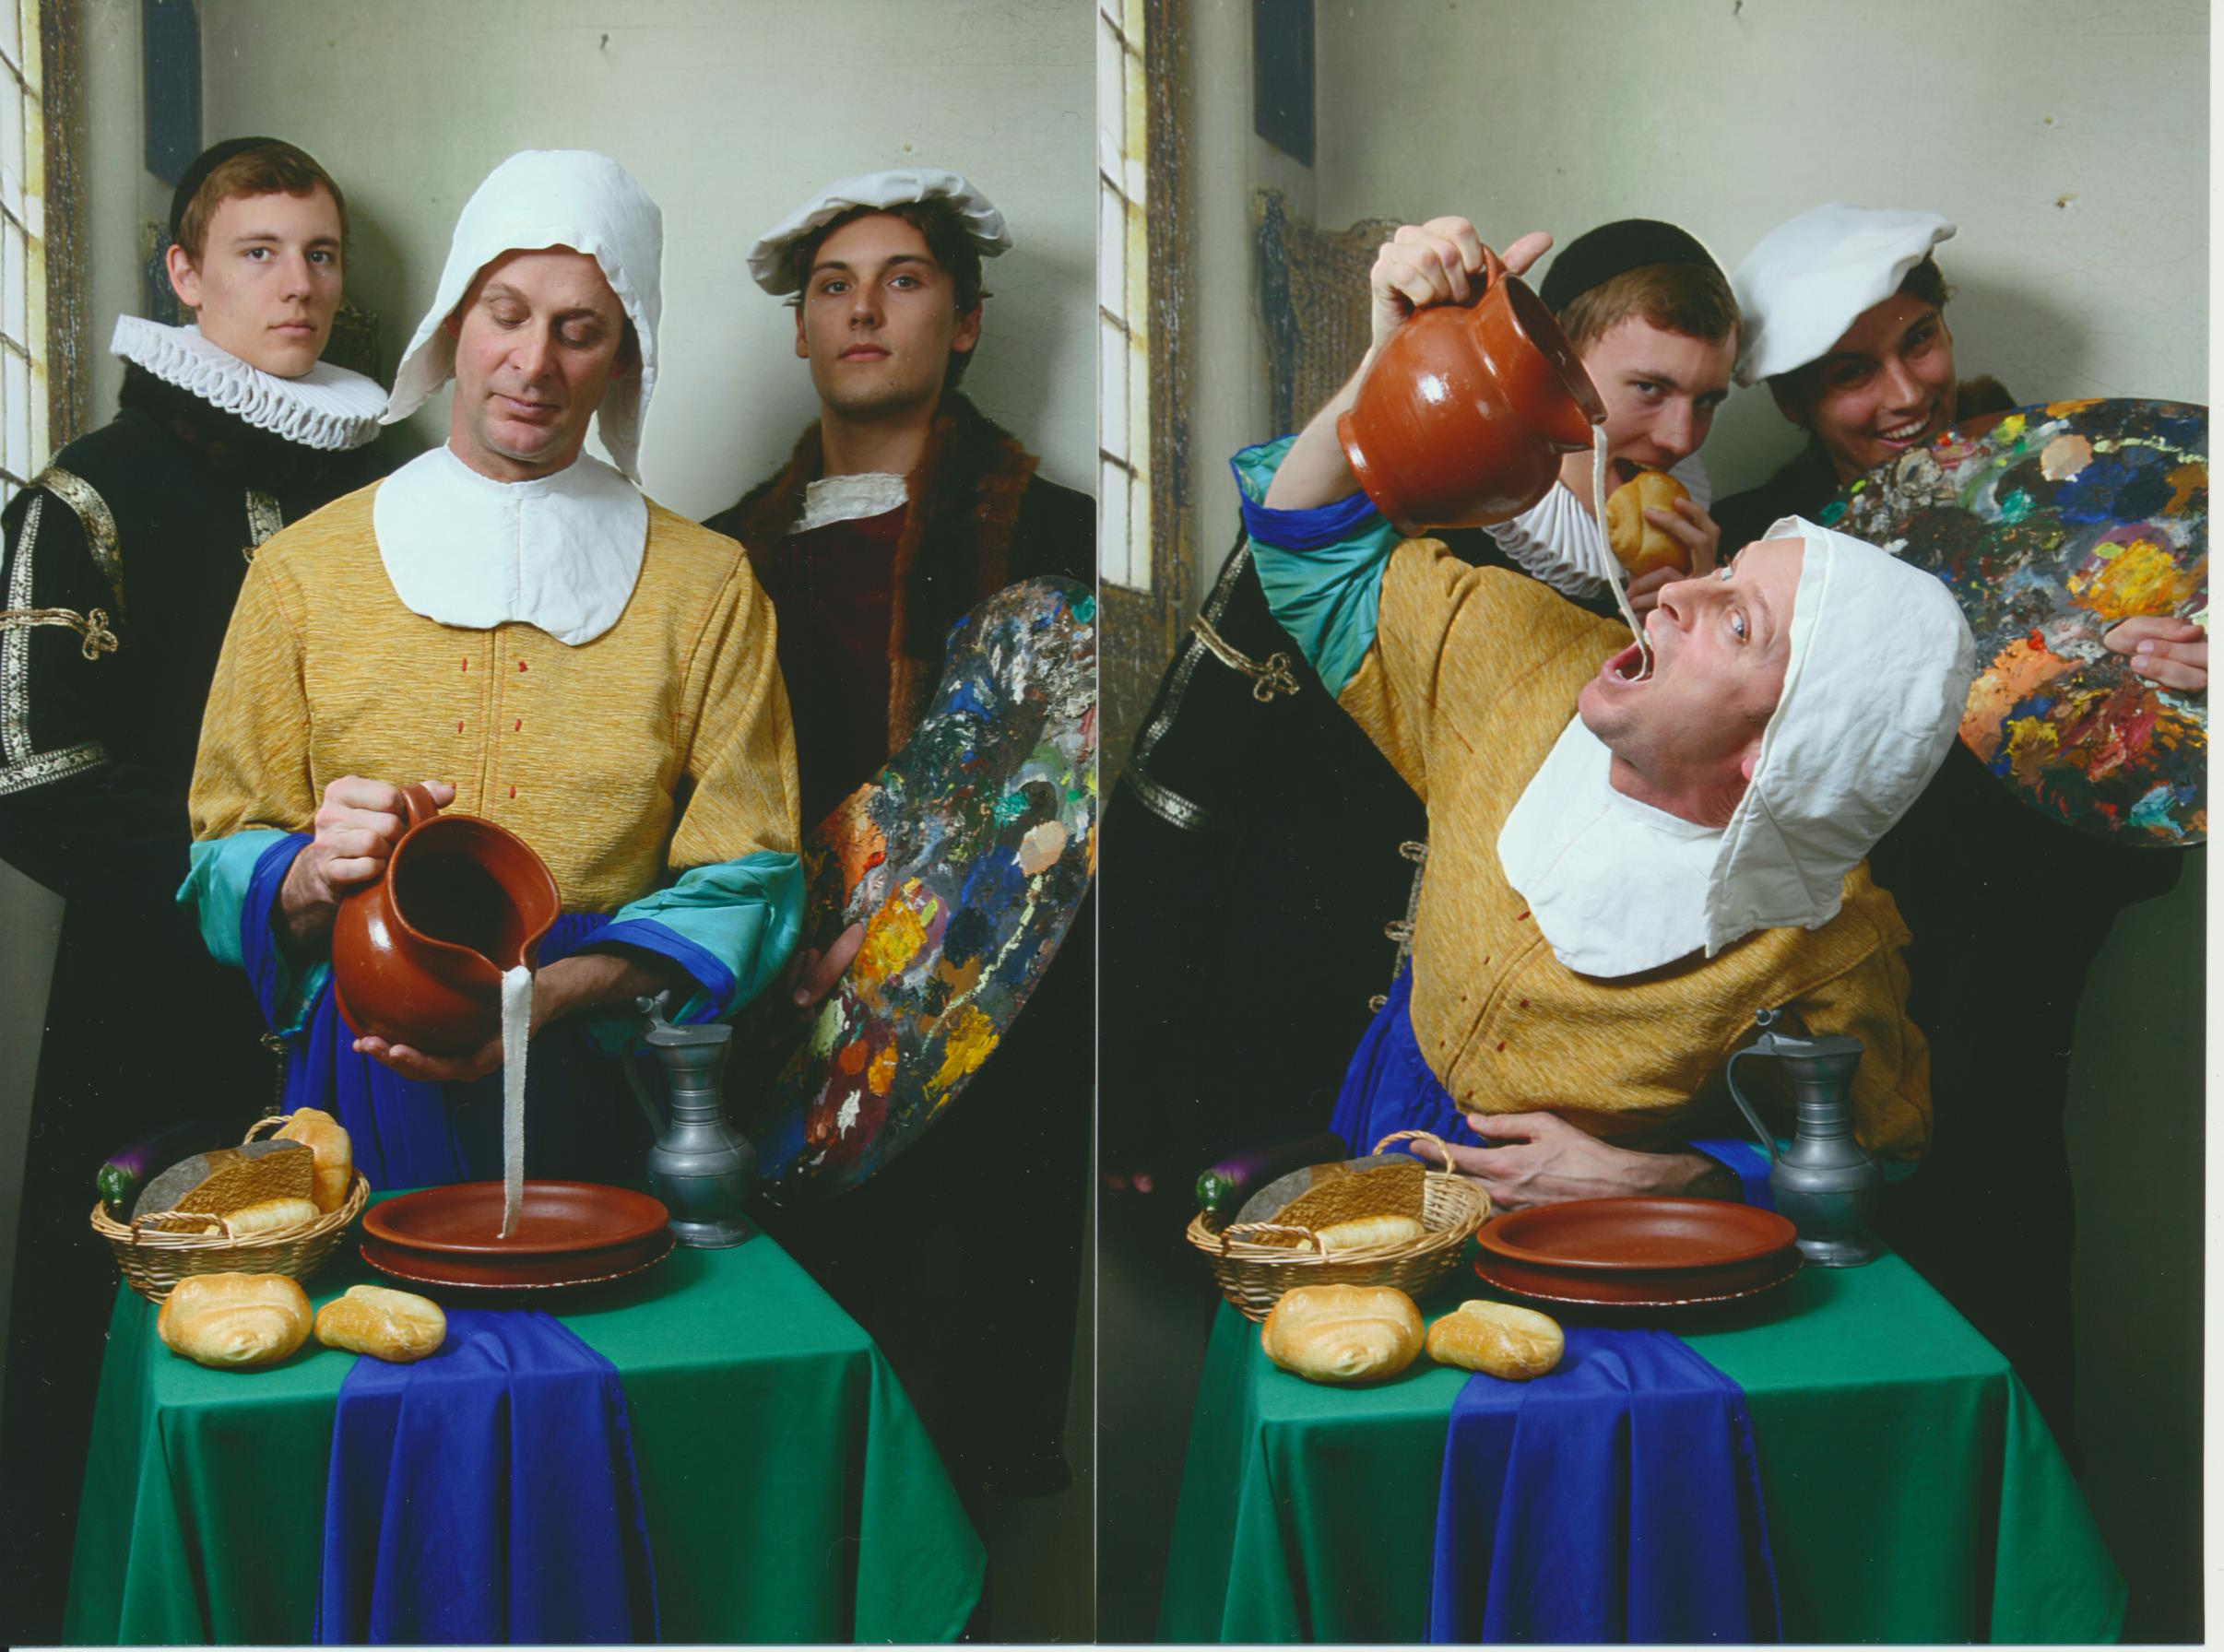 a group of people posing for a Dutch Painting photoshootthe camera